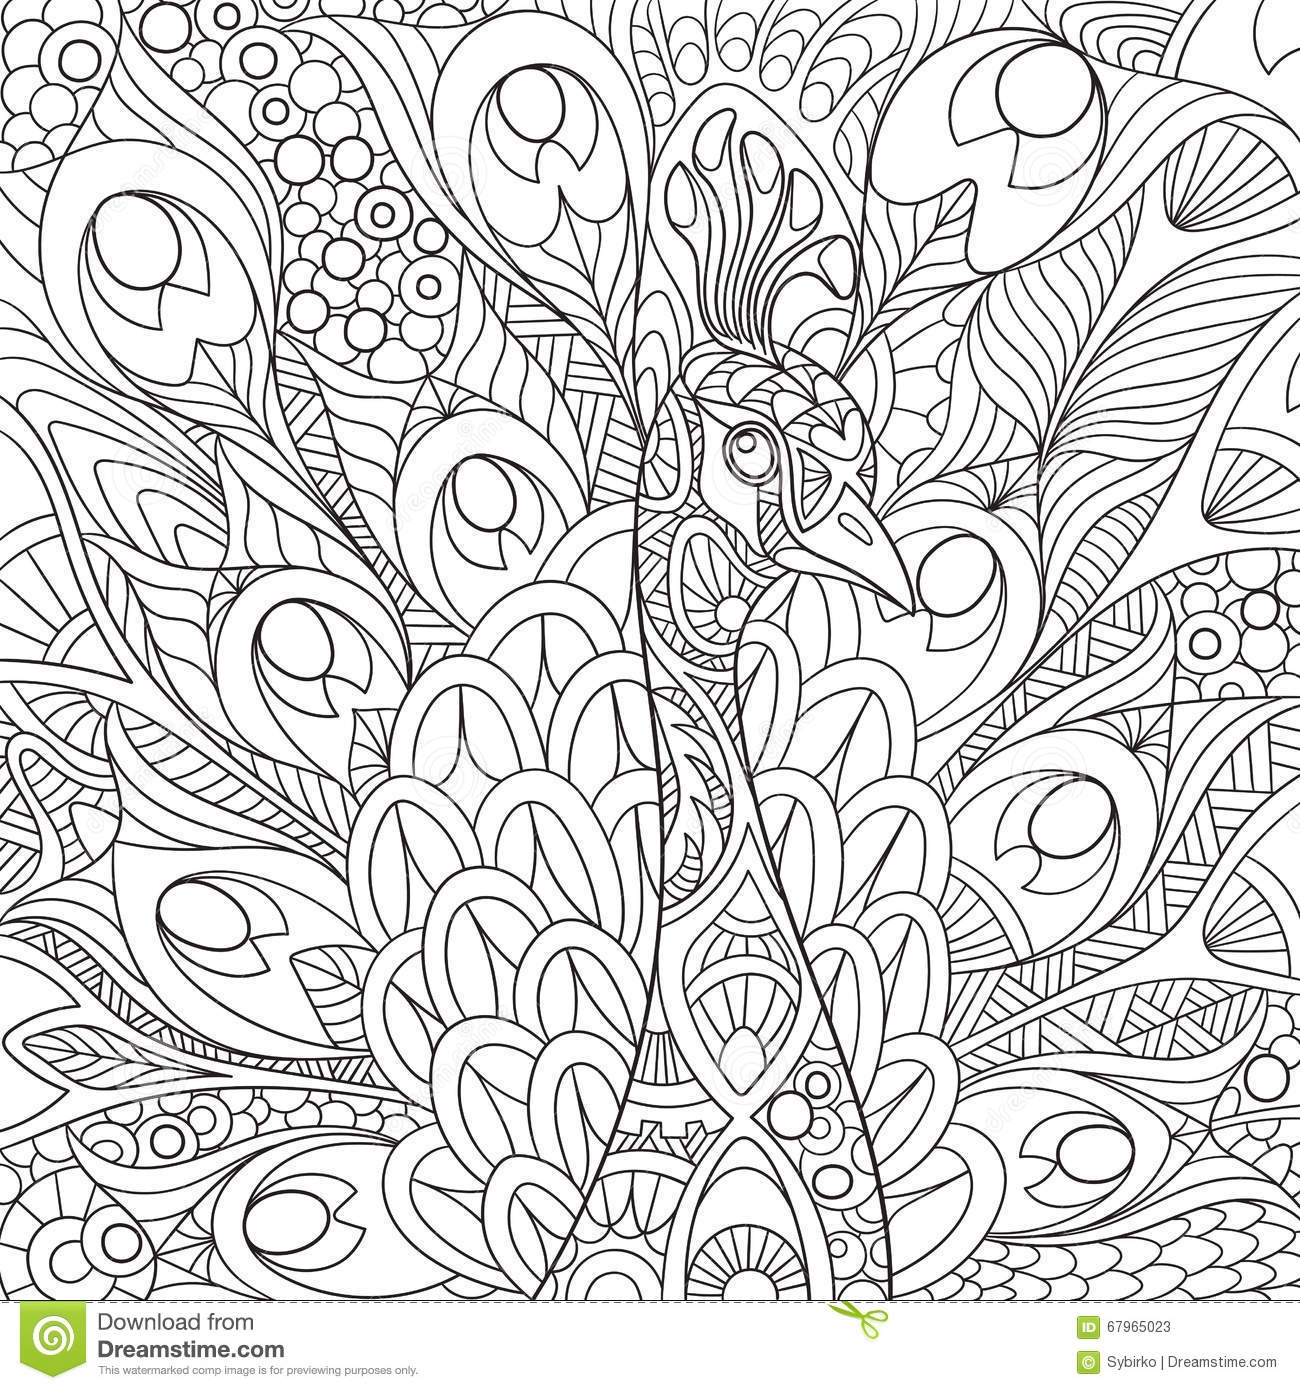 free swear word coloring pages - illustration stock zentangle stylis le paon image